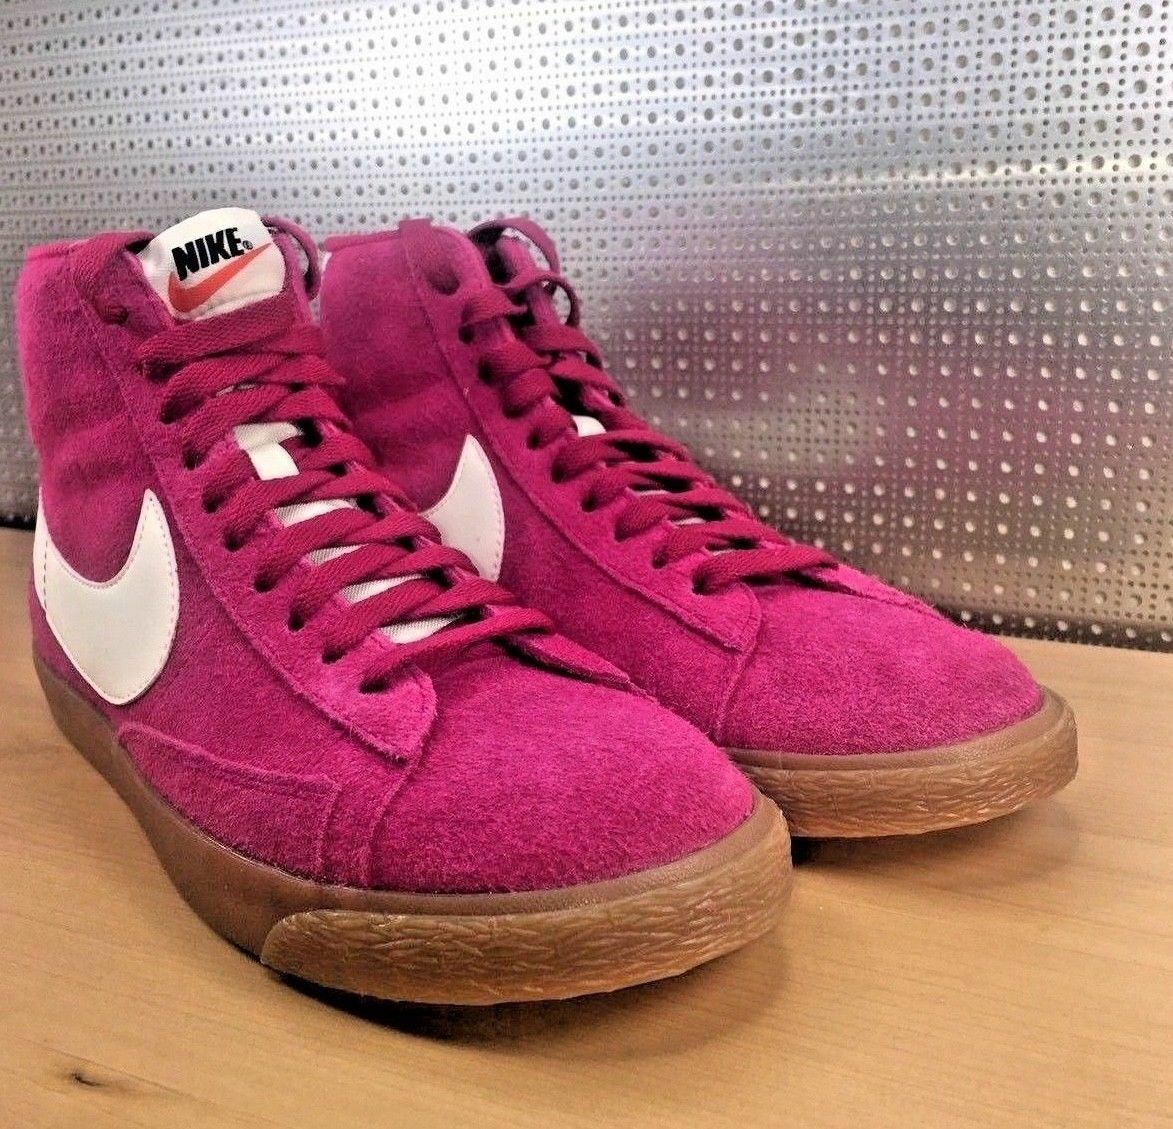 d4aaae56e4d1c NIKE BLAZER MID TOP PRM 518171 614 614 614 Women s Pink Gum Sole Size 9 New  in Box ee889d